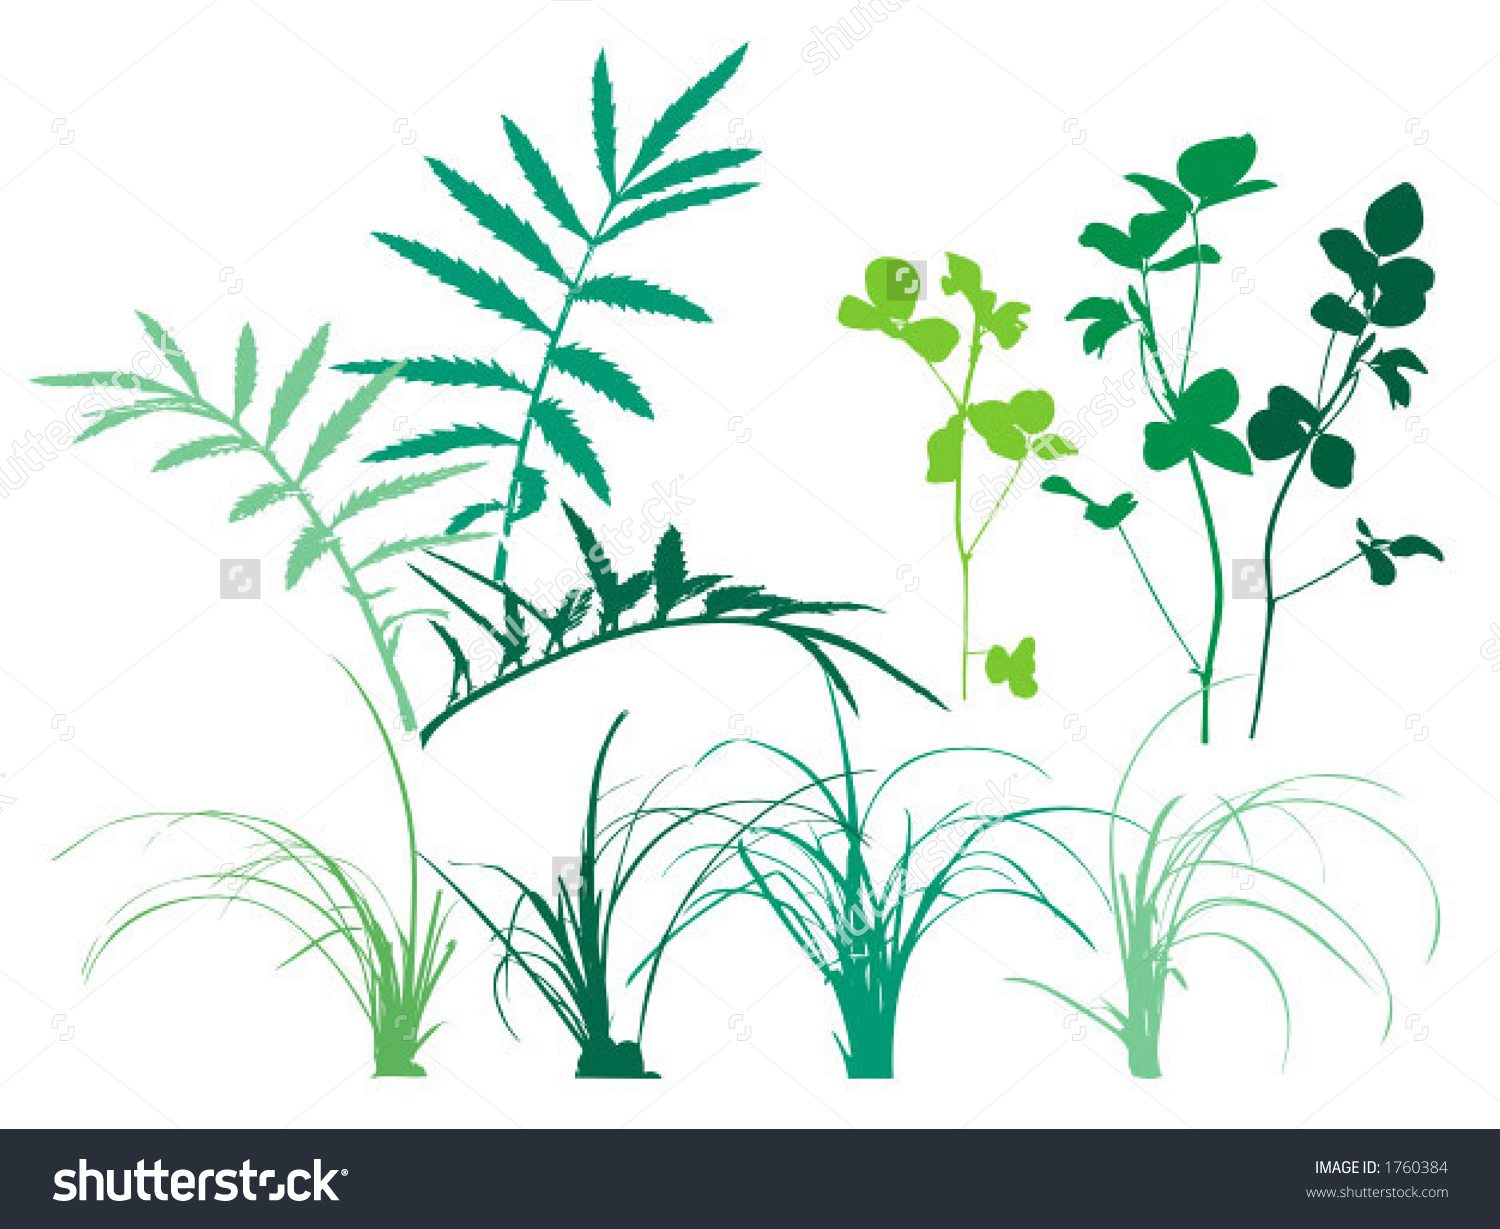 Foliage Patterns Plants Grass Leaves Vector Stock Vector 1760384.